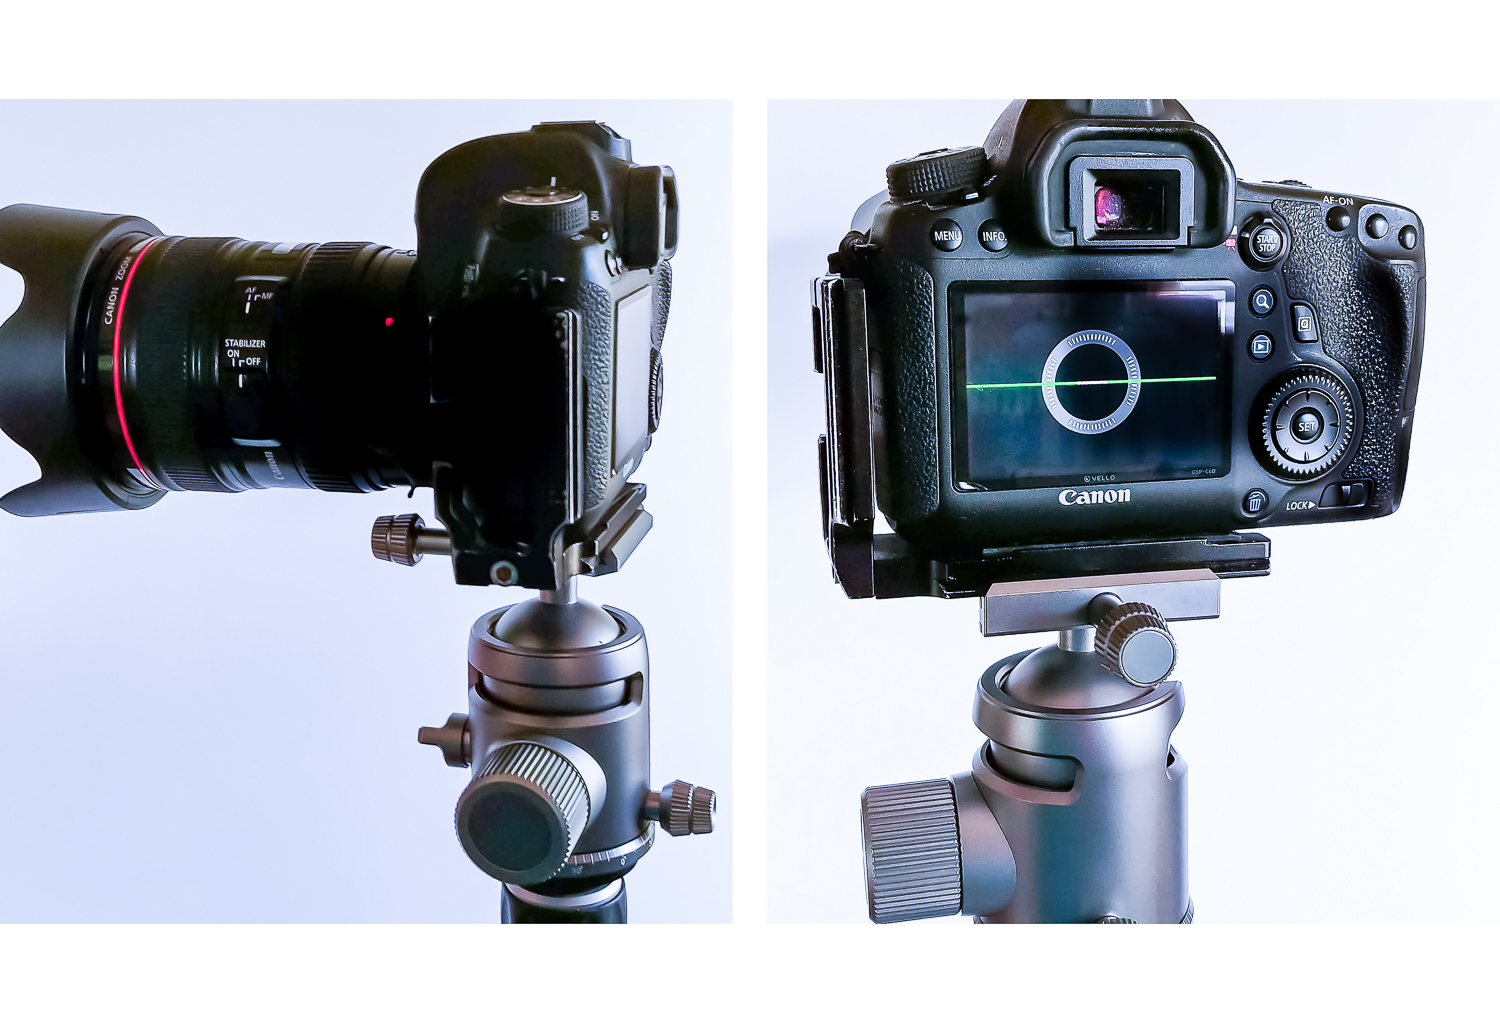 Image: Using the L-bracket with the camera in landscape orientation will require you to choose to pu...